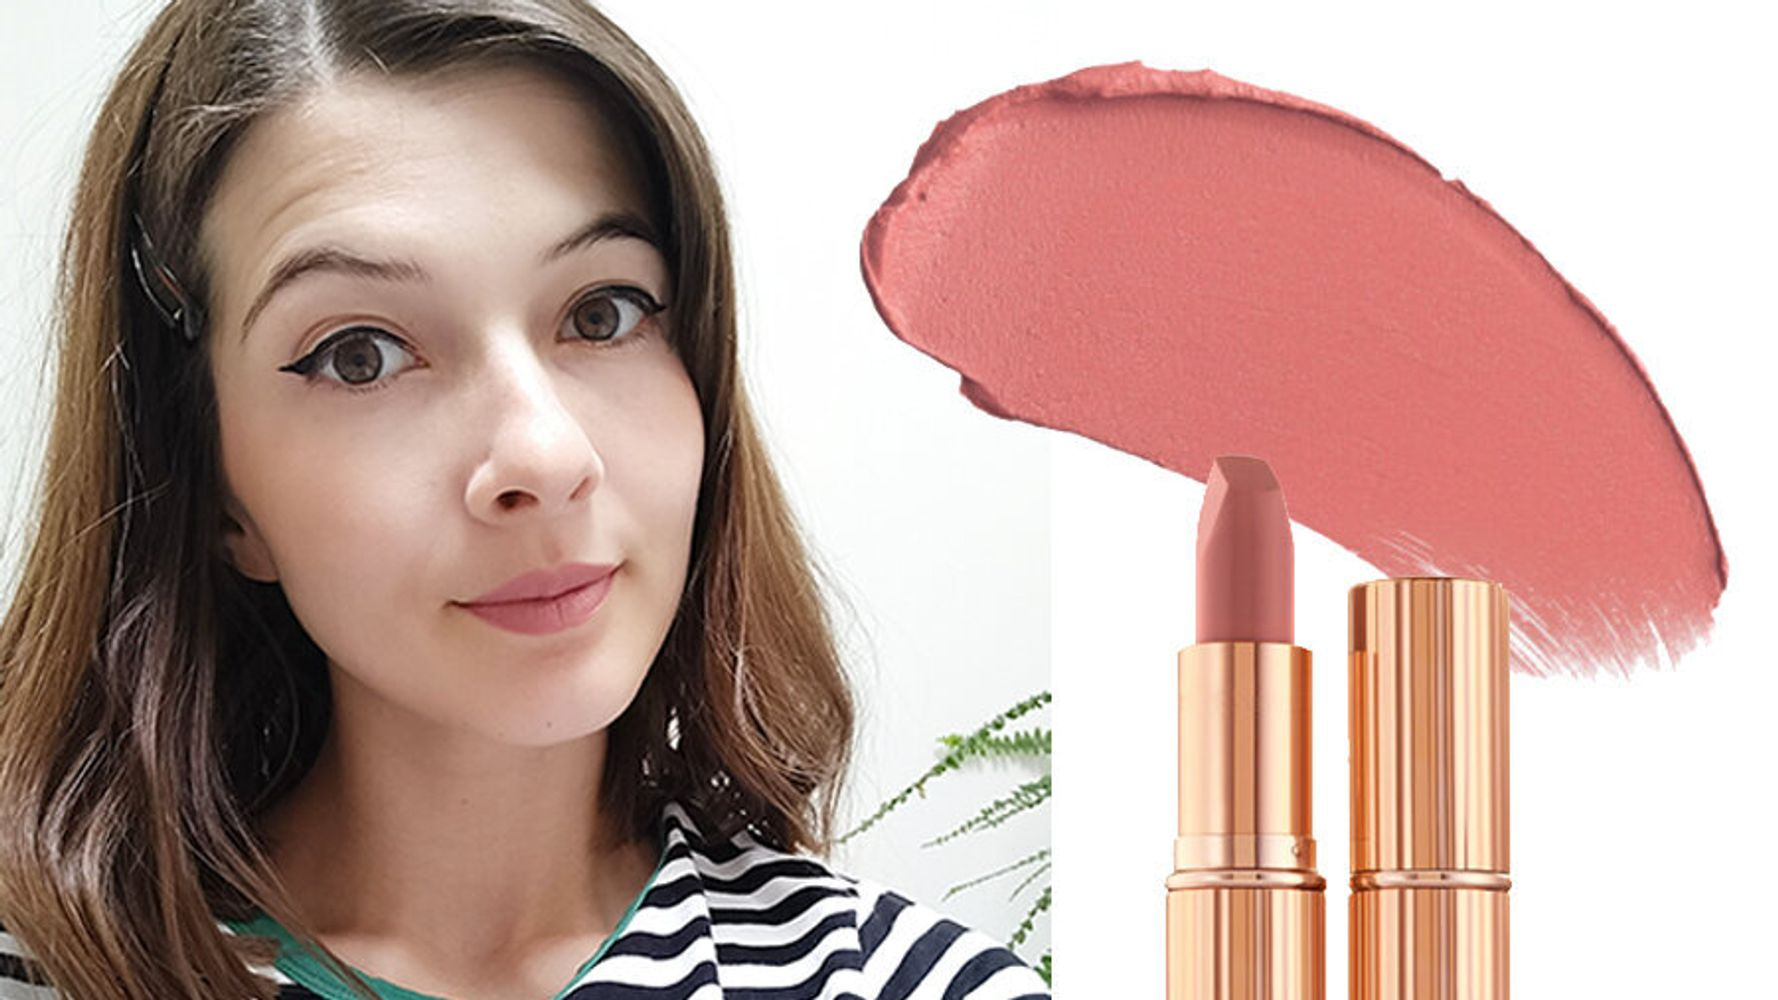 How Does Charlotte Tilbury's Pillow Talk Lipstick Compare To